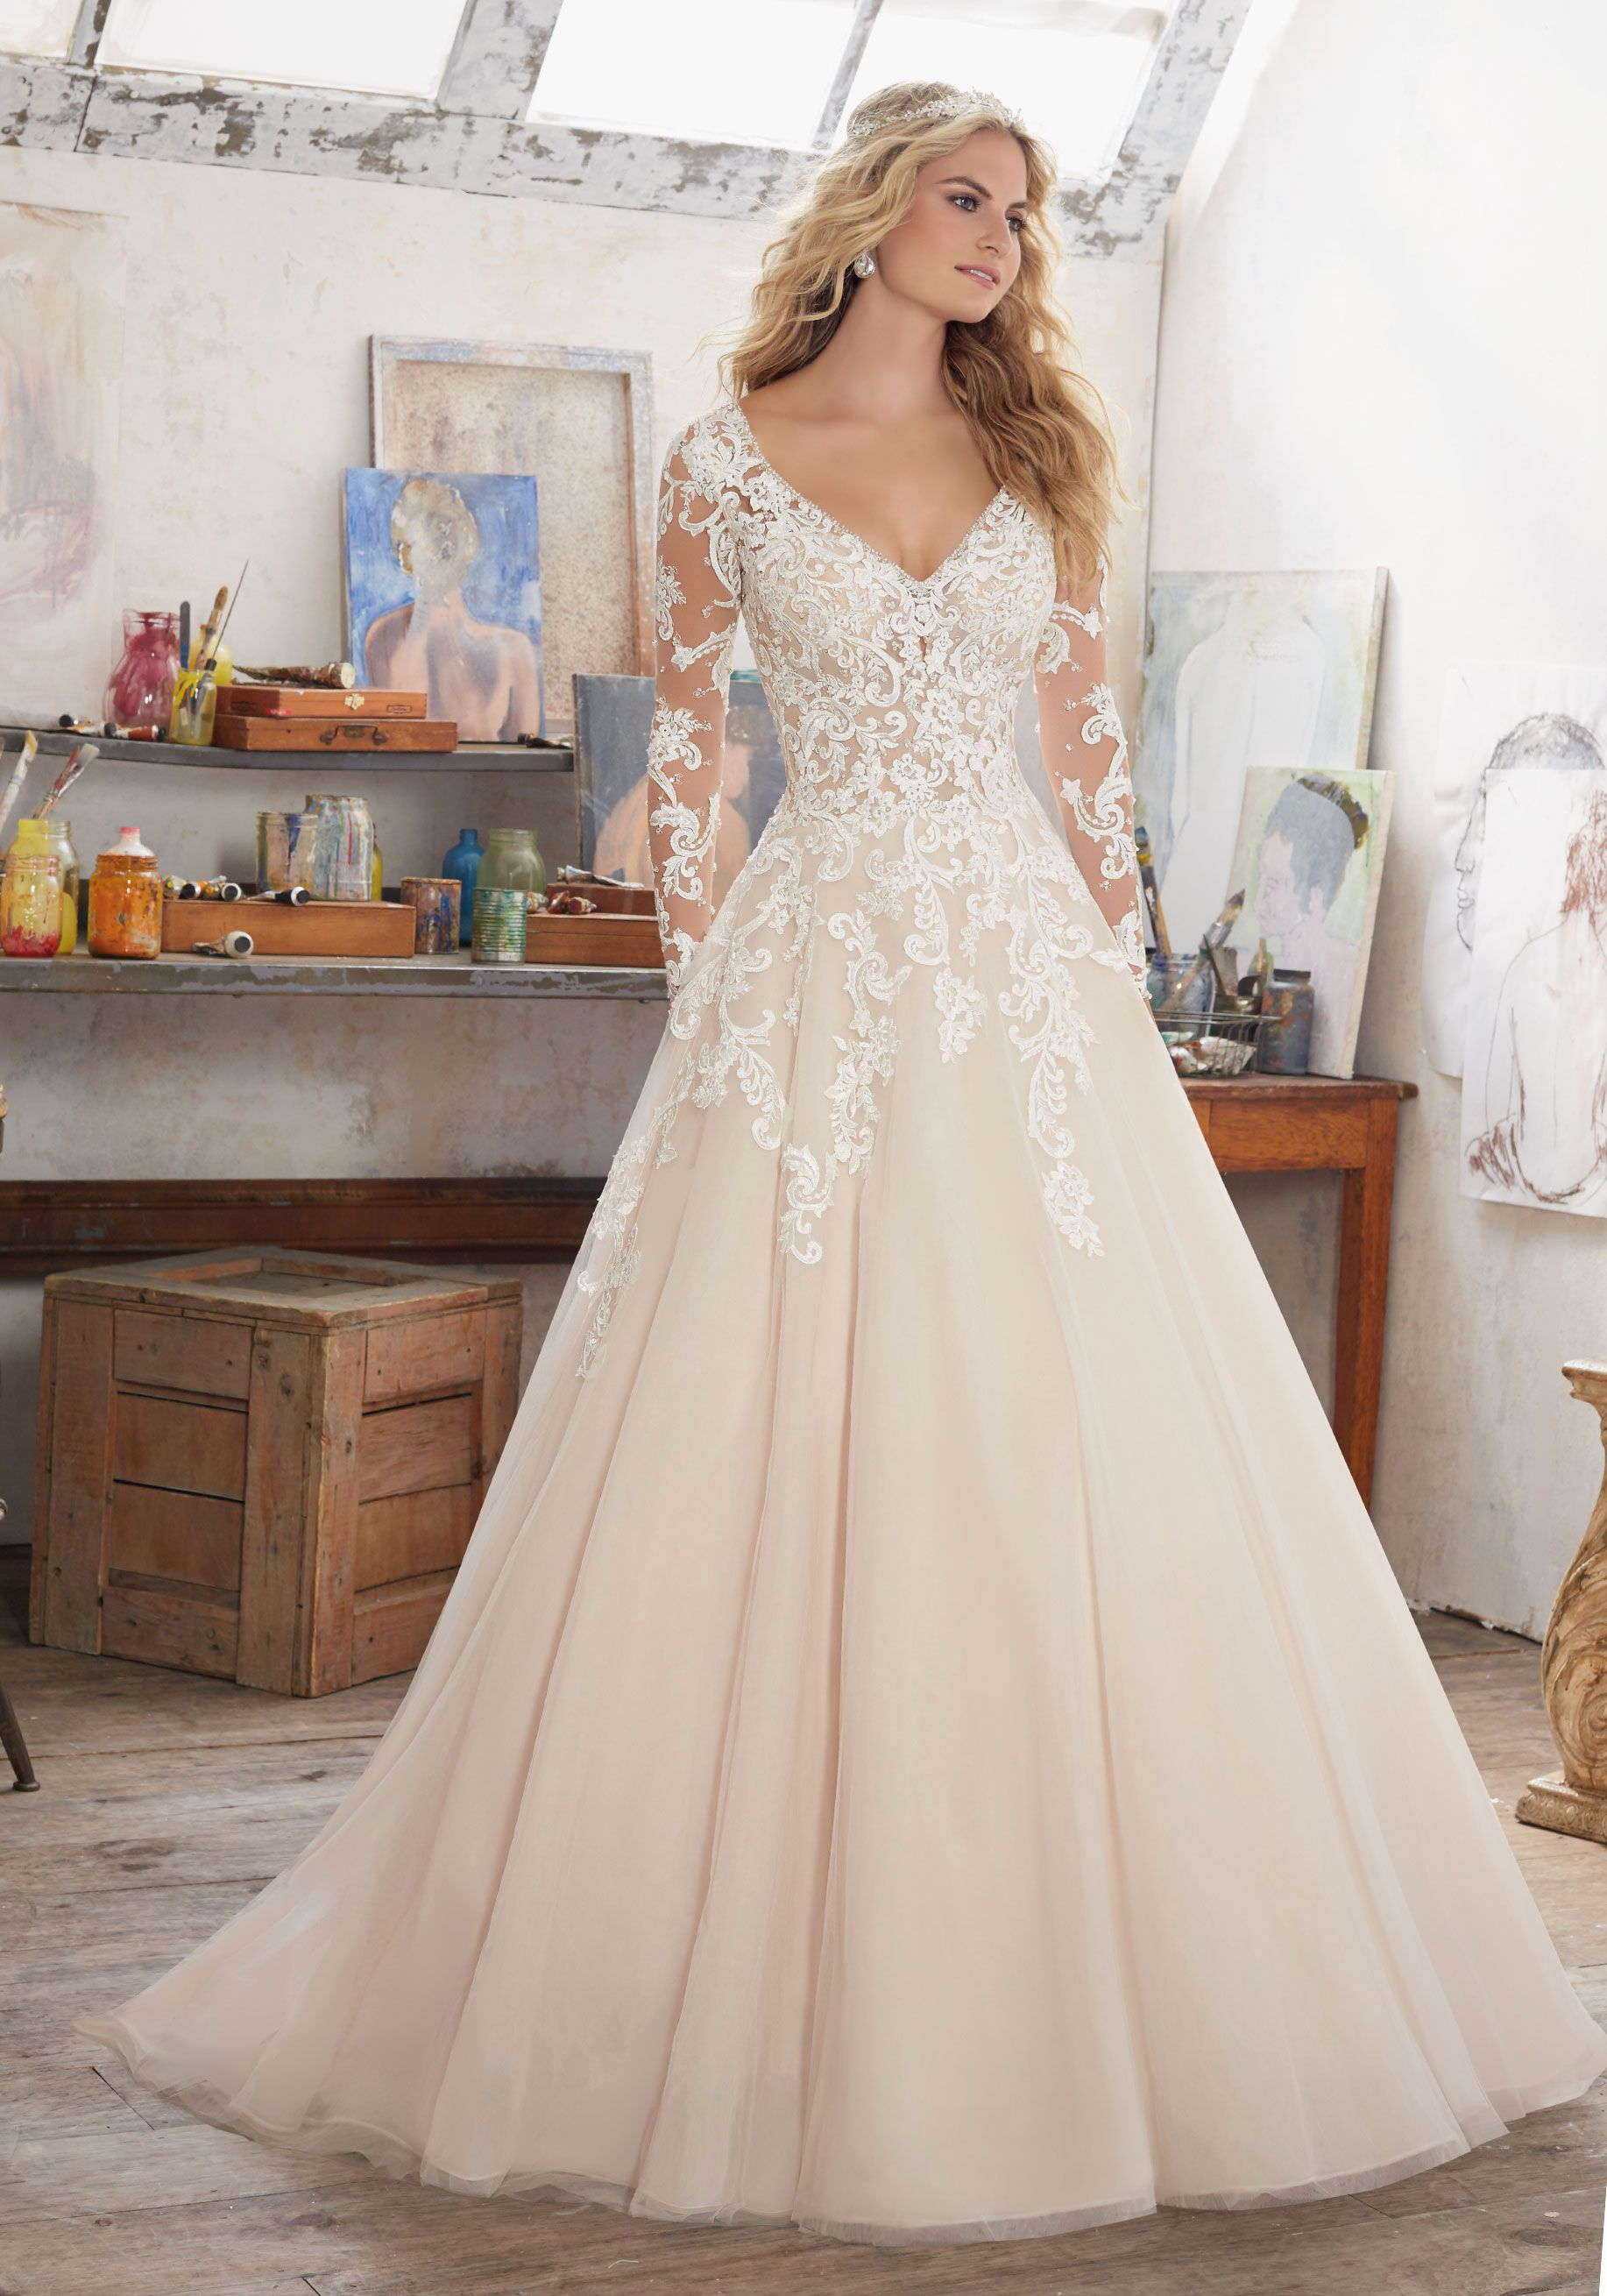 Long sleeve wedding dress featuring delicate crystal beading on